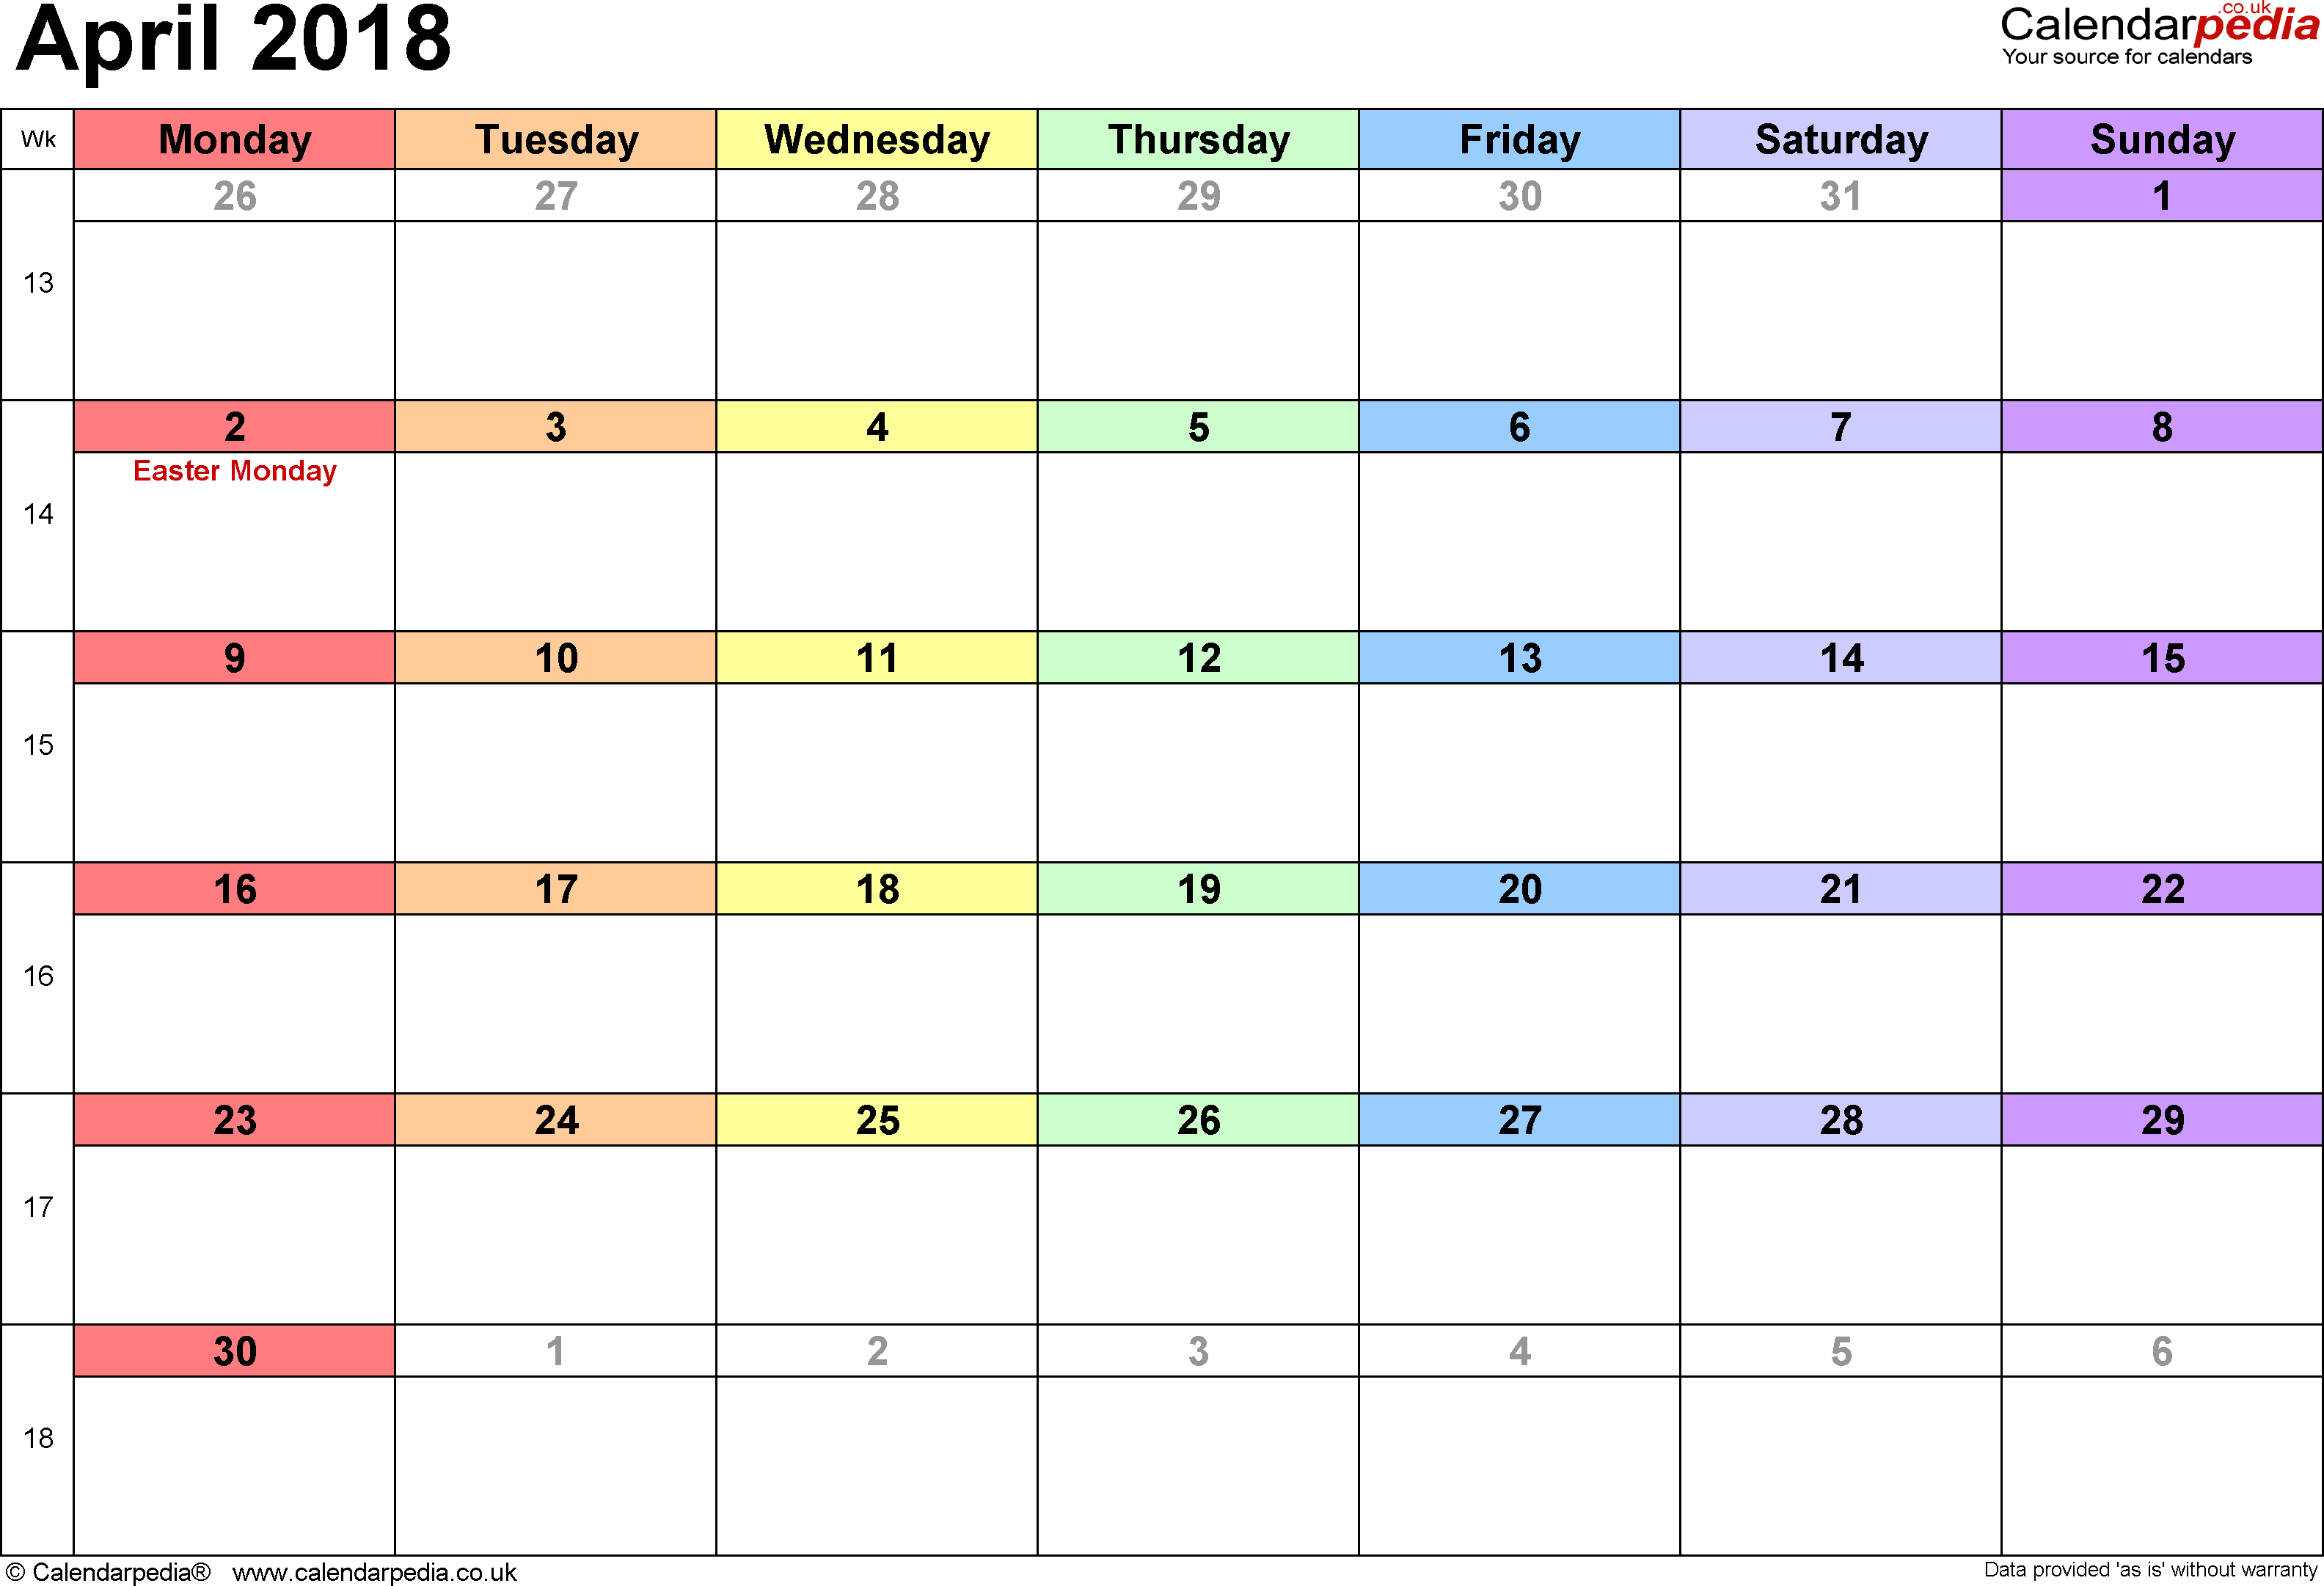 Calendar April 2018, landscape orientation, 1 page, with UK bank holidays and week numbers